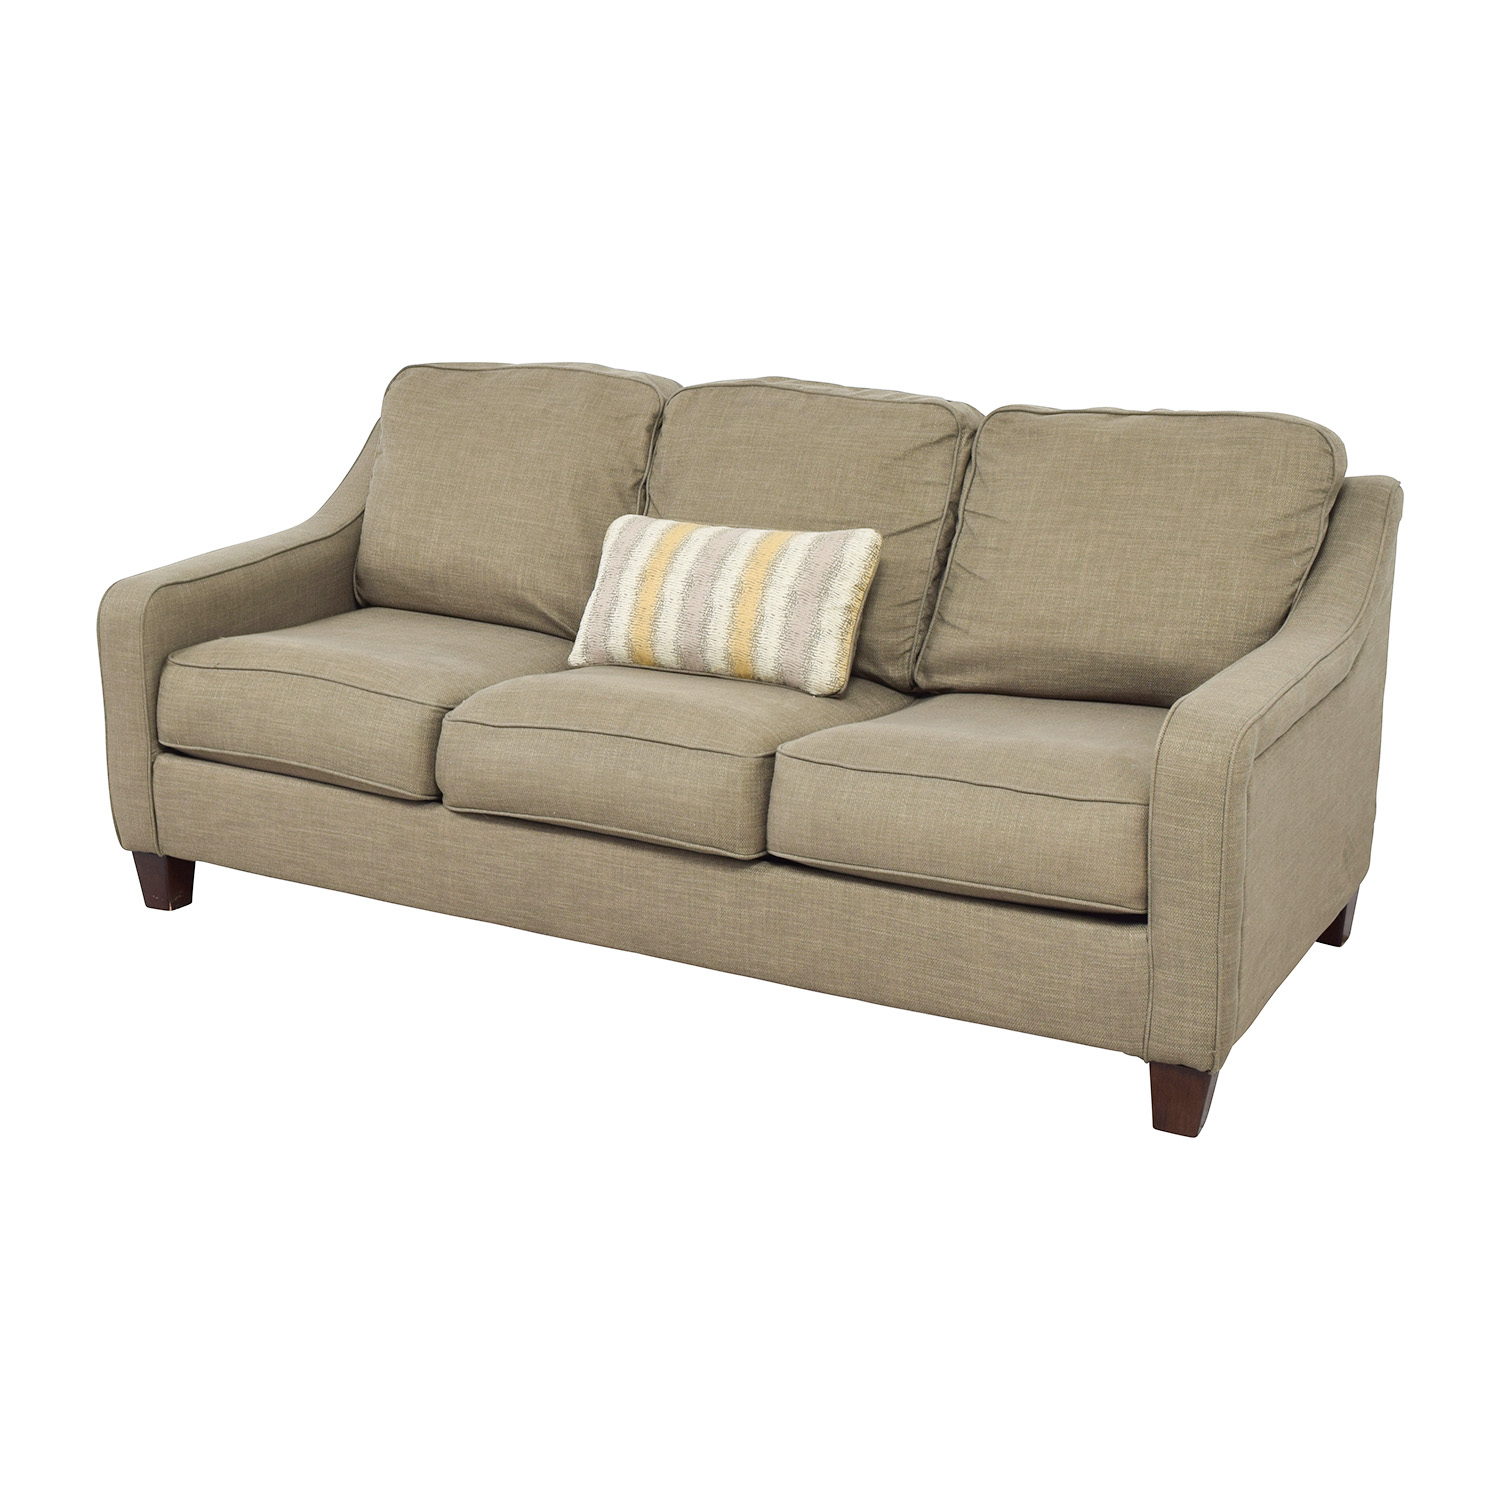 55% OFF Jennifer Furniture Jennifer Furniture Brown